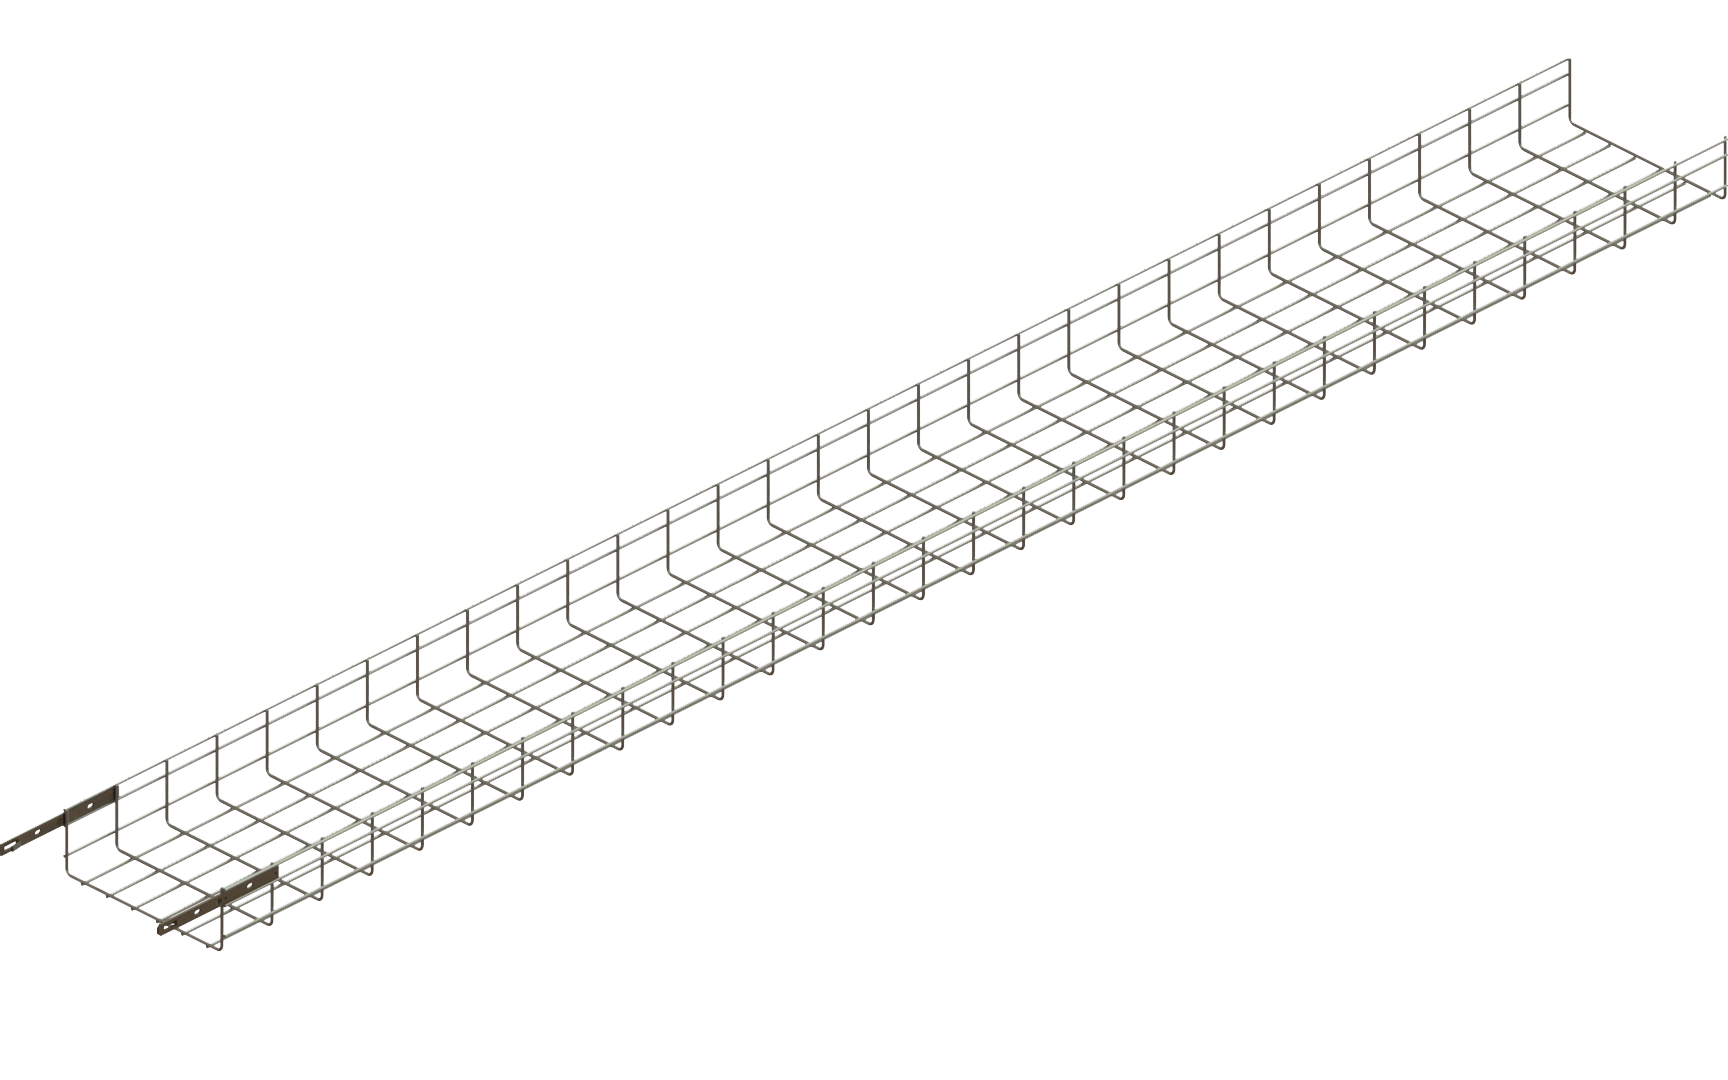 4H Wire Basket - Part Image.png